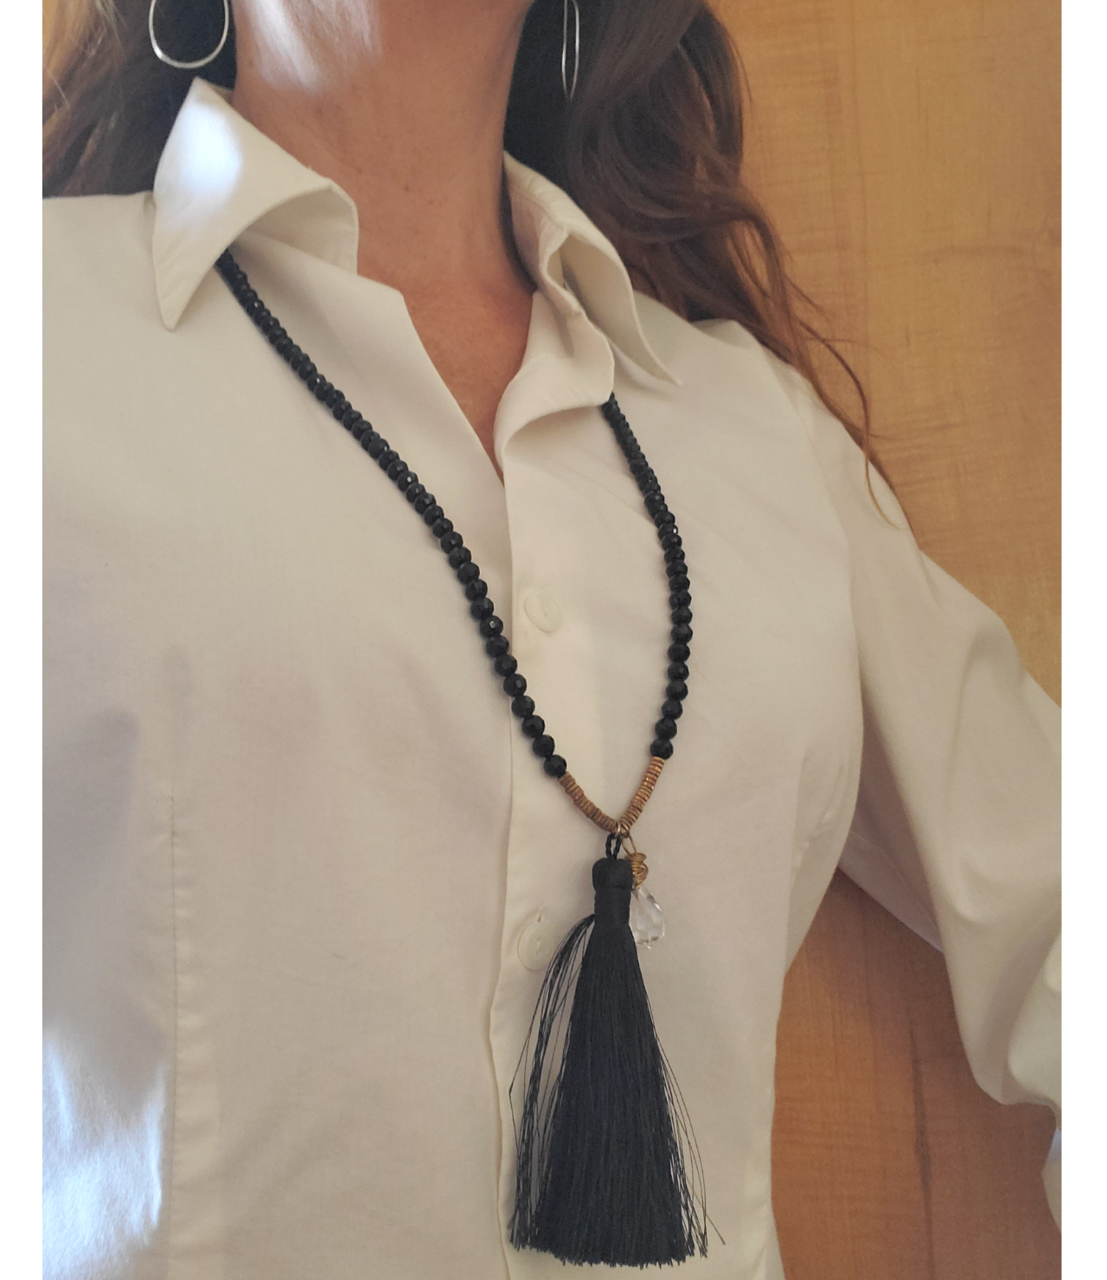 long black tassel necklace worn with white blouse